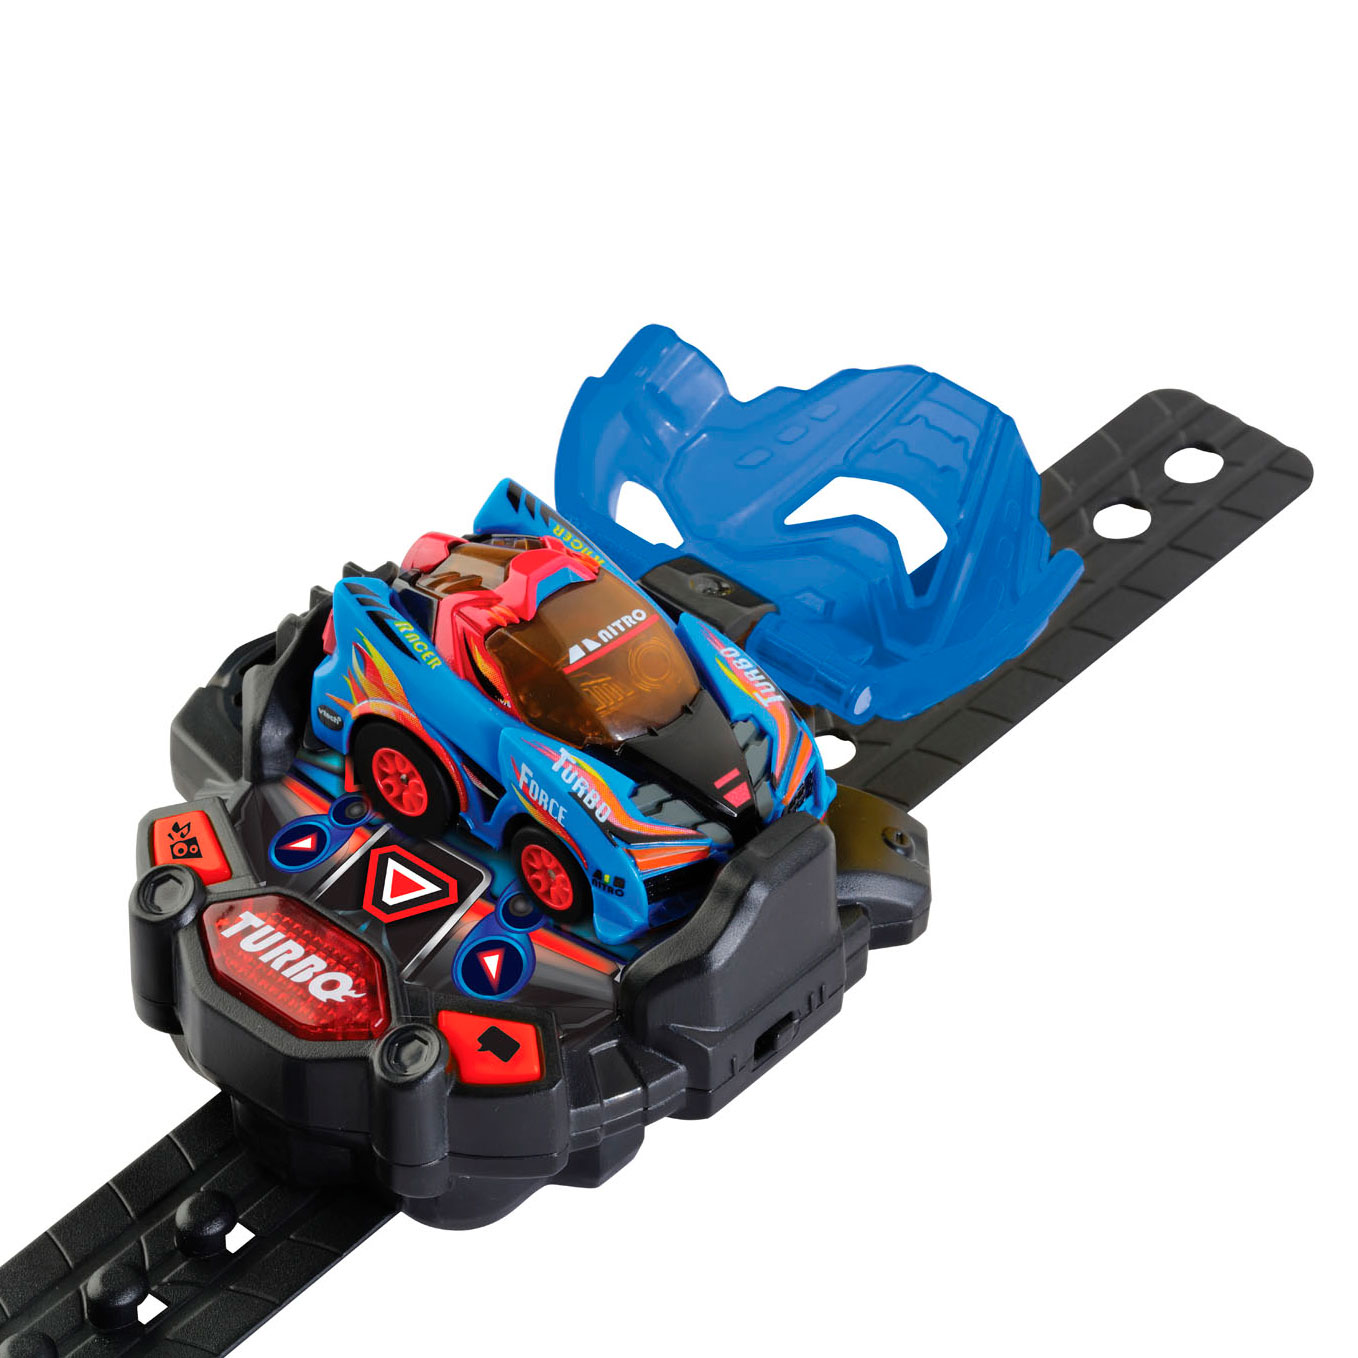 VTech Turbo Force Racer - Blauw